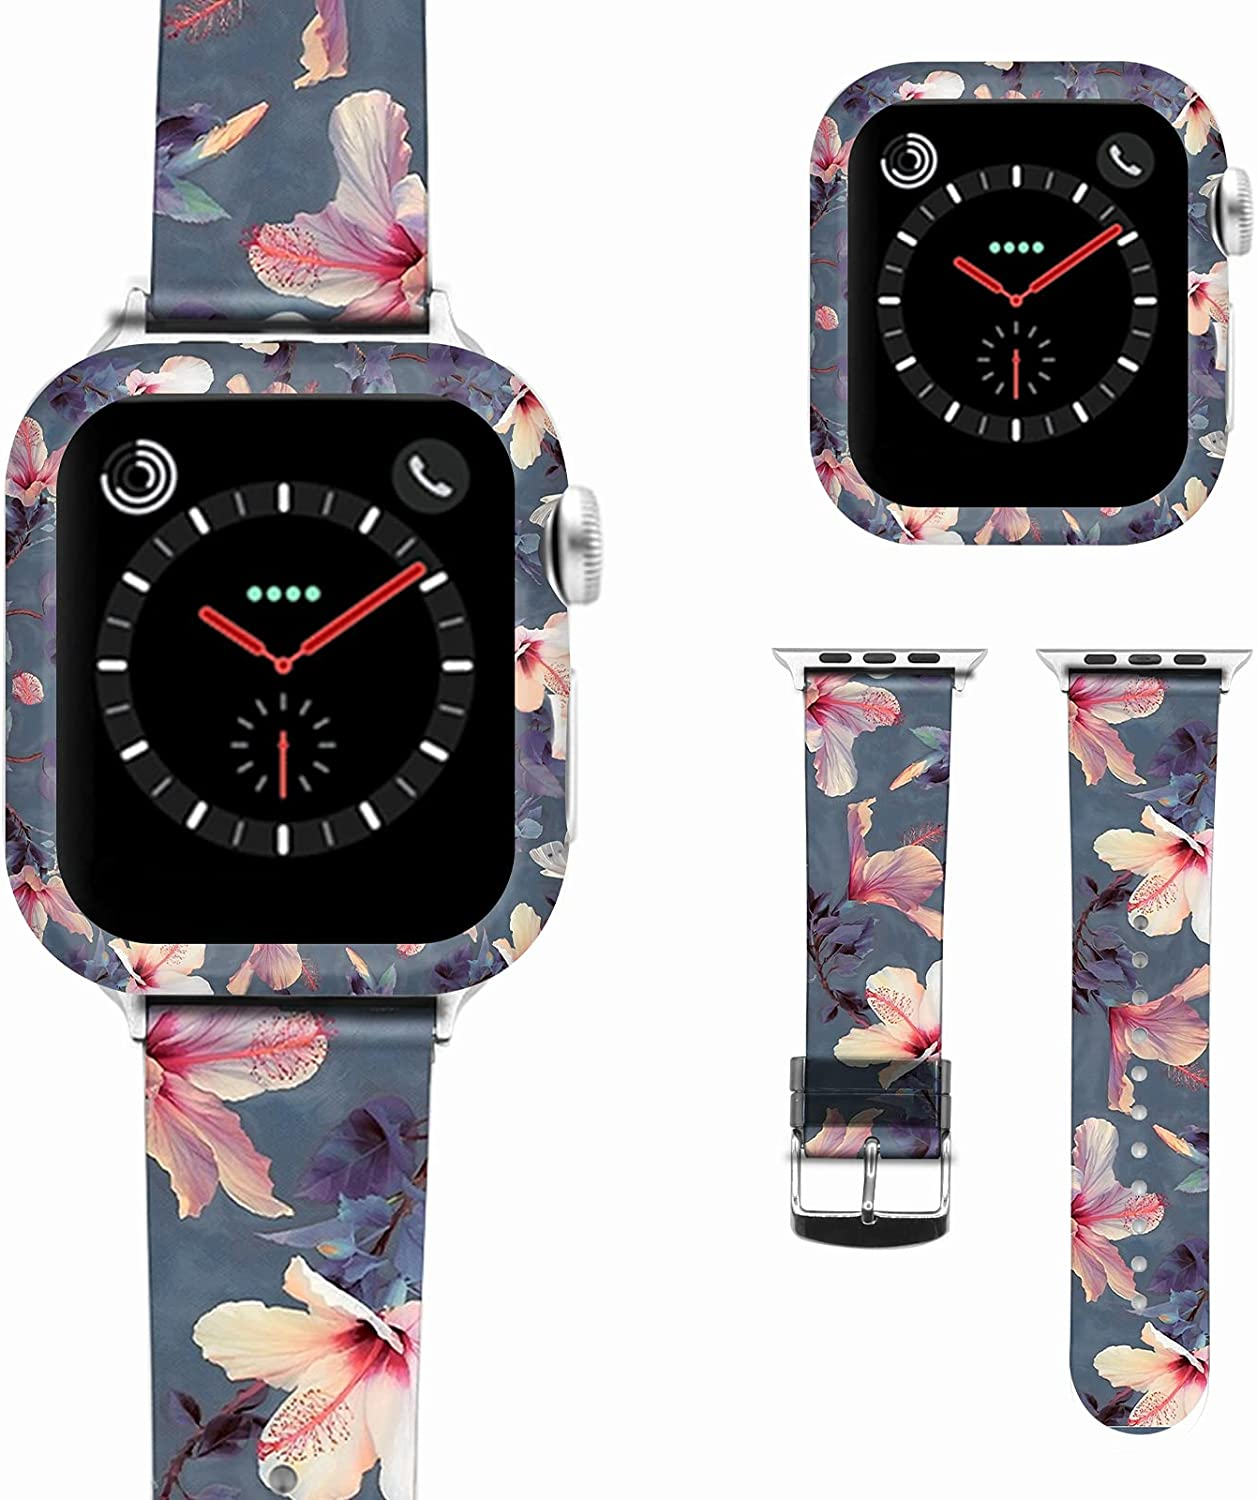 Cartoon Pattern Soft Leather Watch Bands Compatible with Apple iWatch Band 38 40 42 44 mm , Women Men Watch Band Replacement Strap for iWatch 6 SE Series 5 4 3 2 1